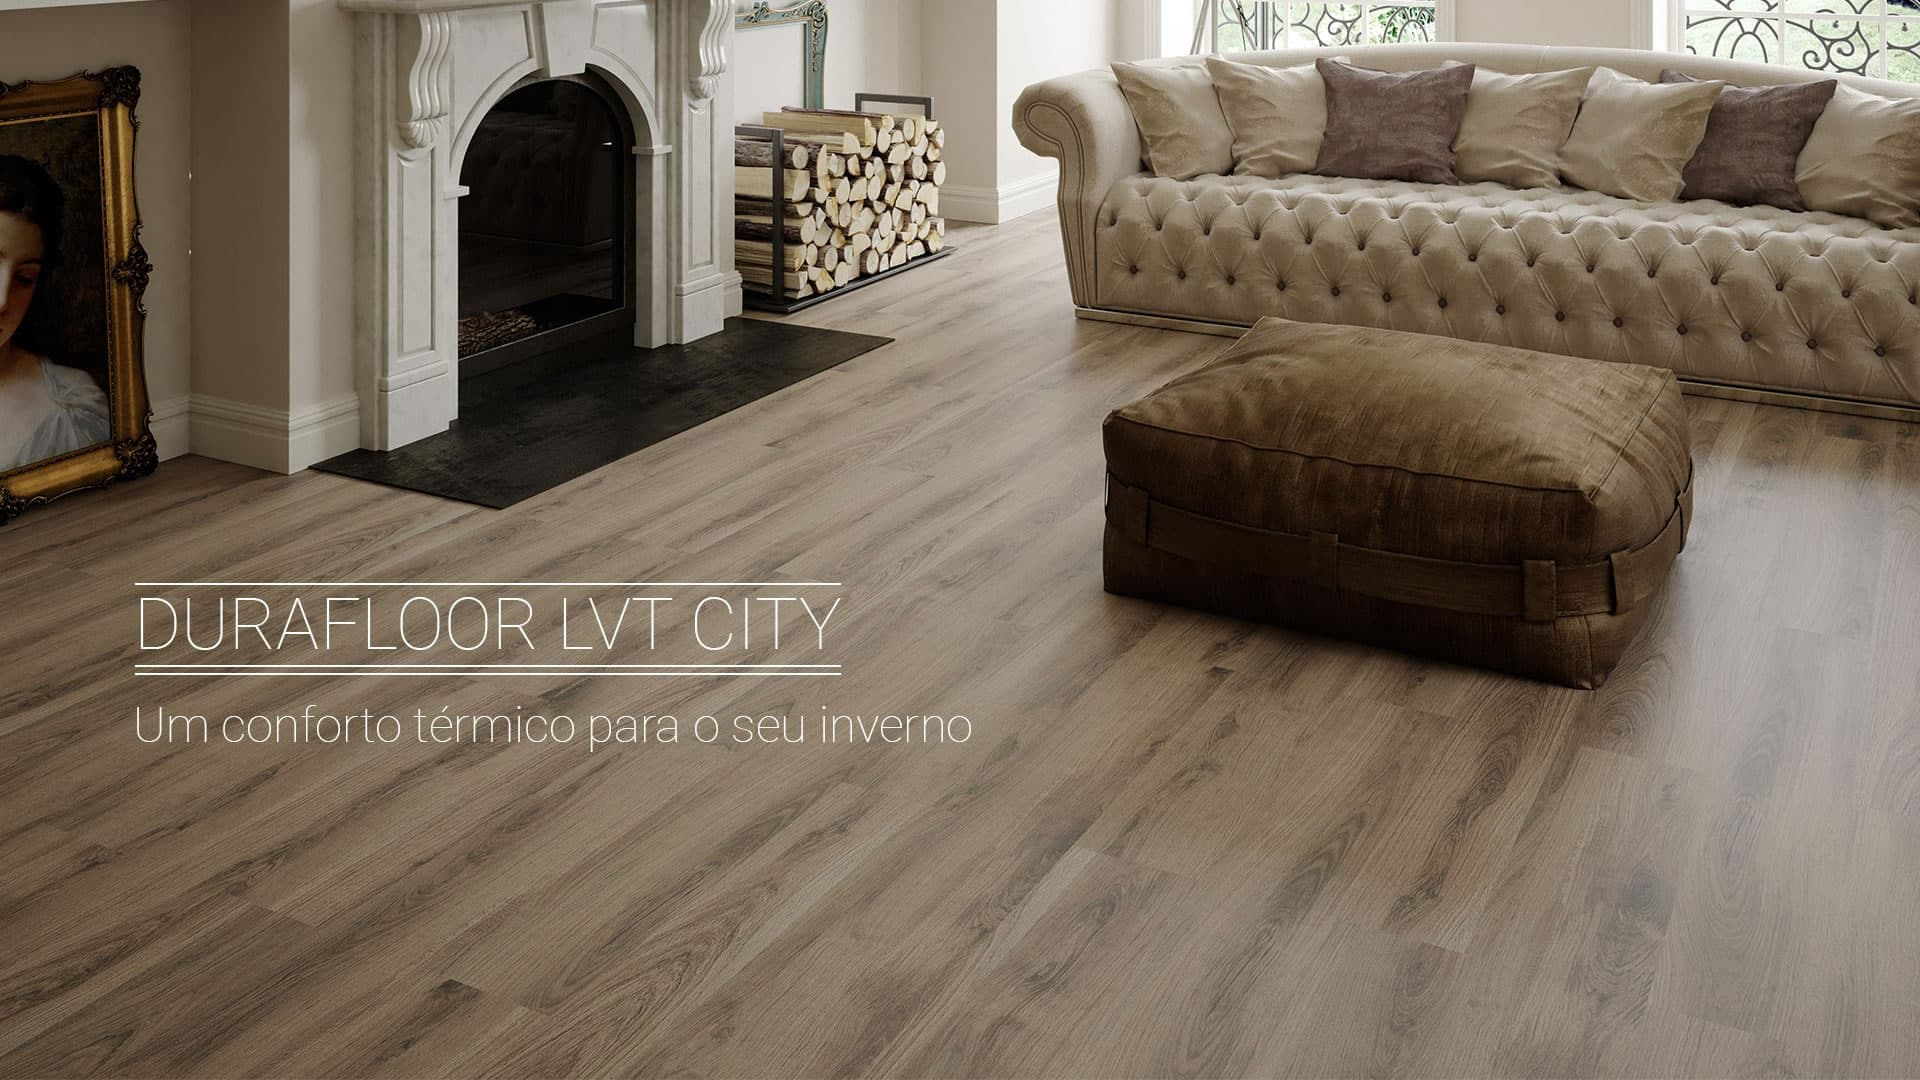 Durafloor LVT City